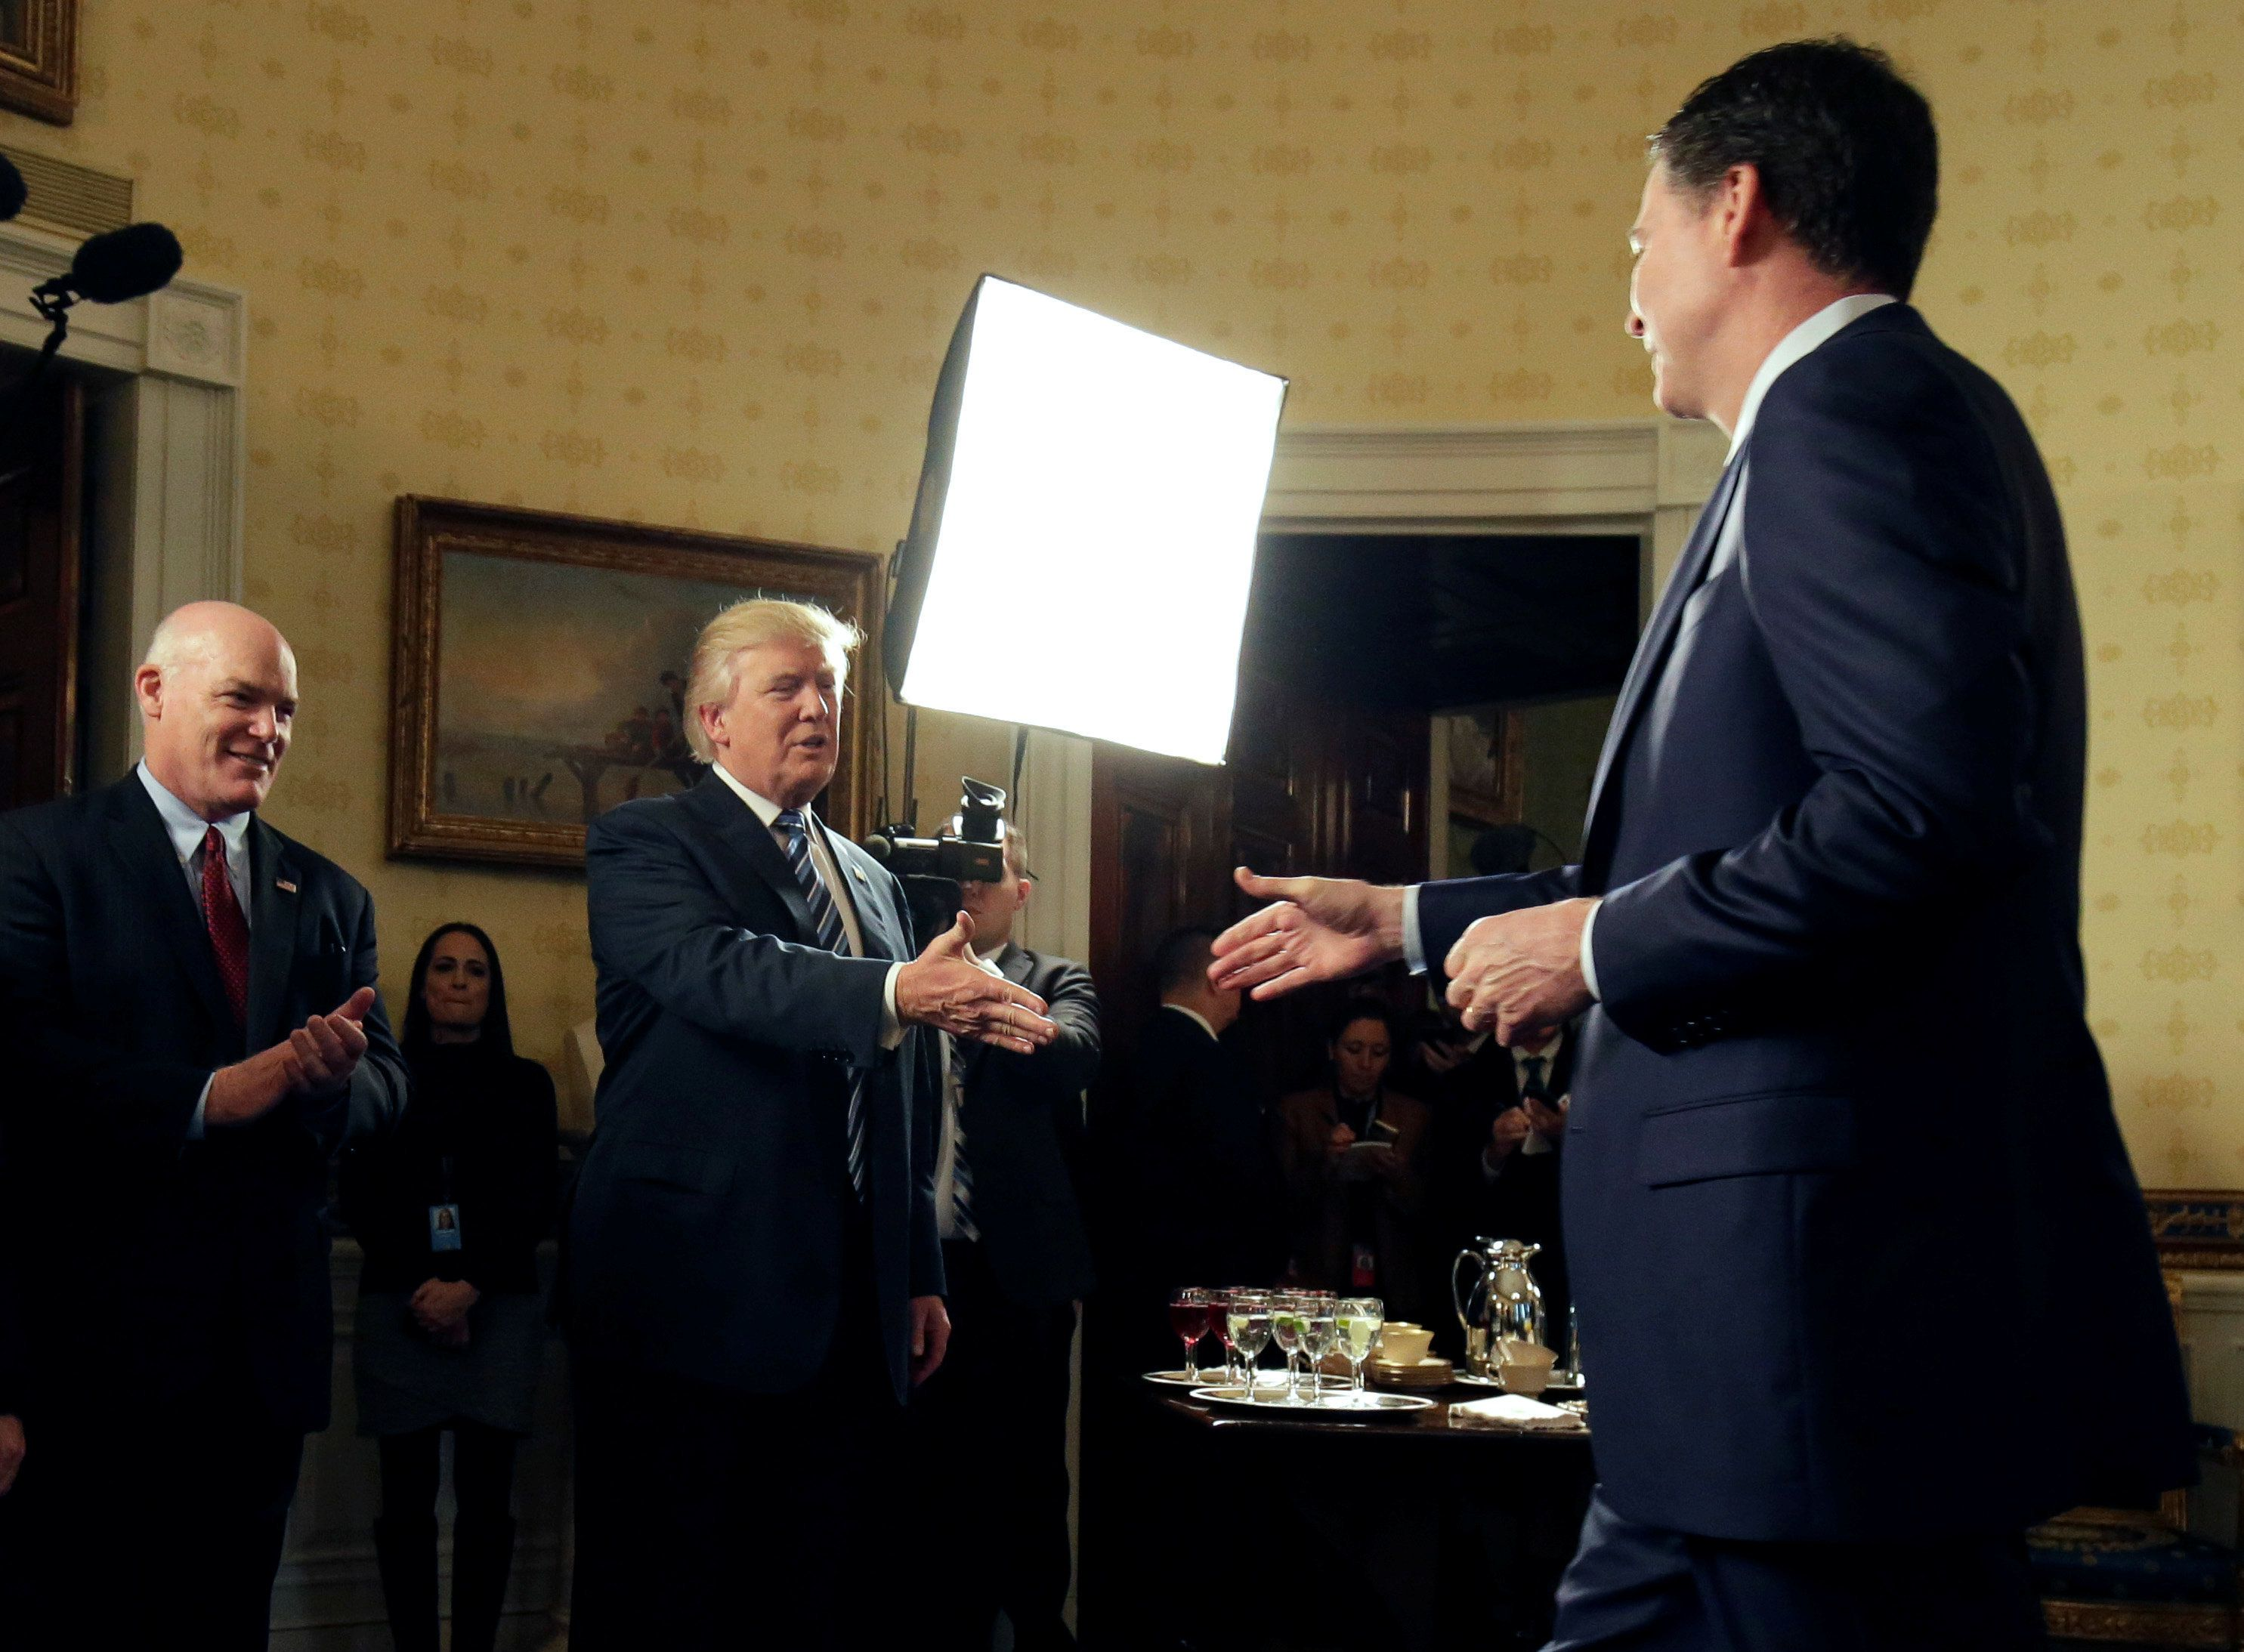 Here's A Timeline Of Events That Led Up To James Comey's